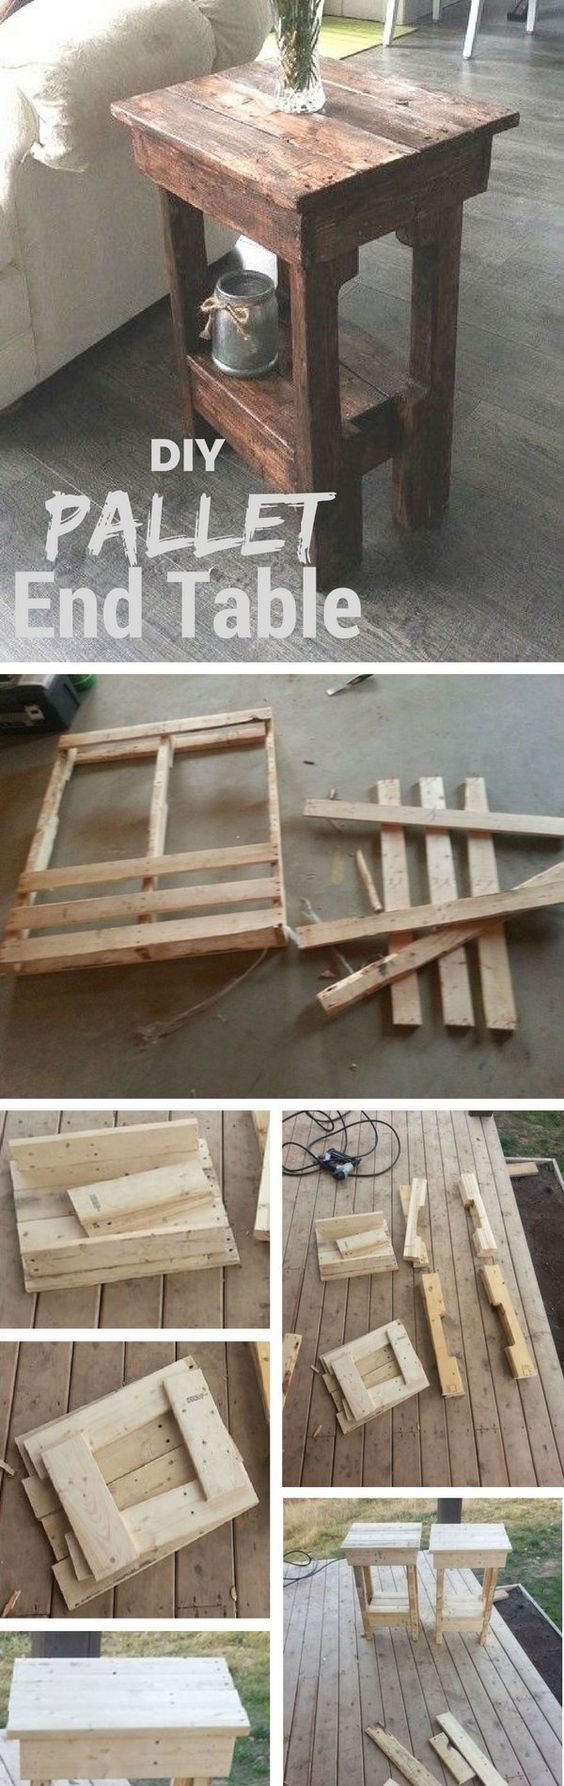 Make this easy DIY end table from pallet wood @istandarddesign